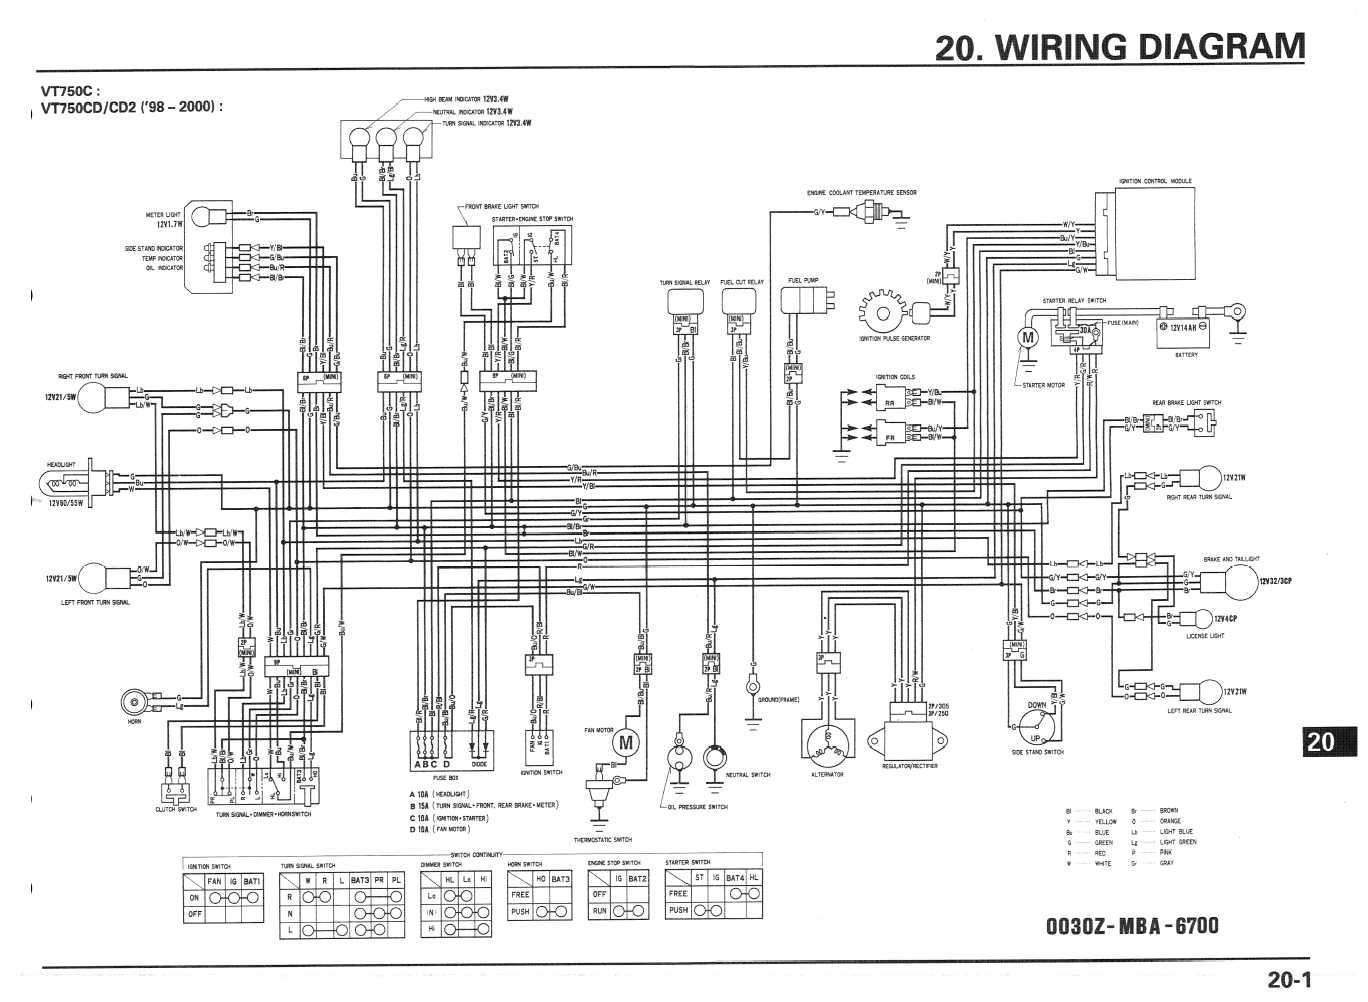 1985 honda shadow vt1100 wiring diagram